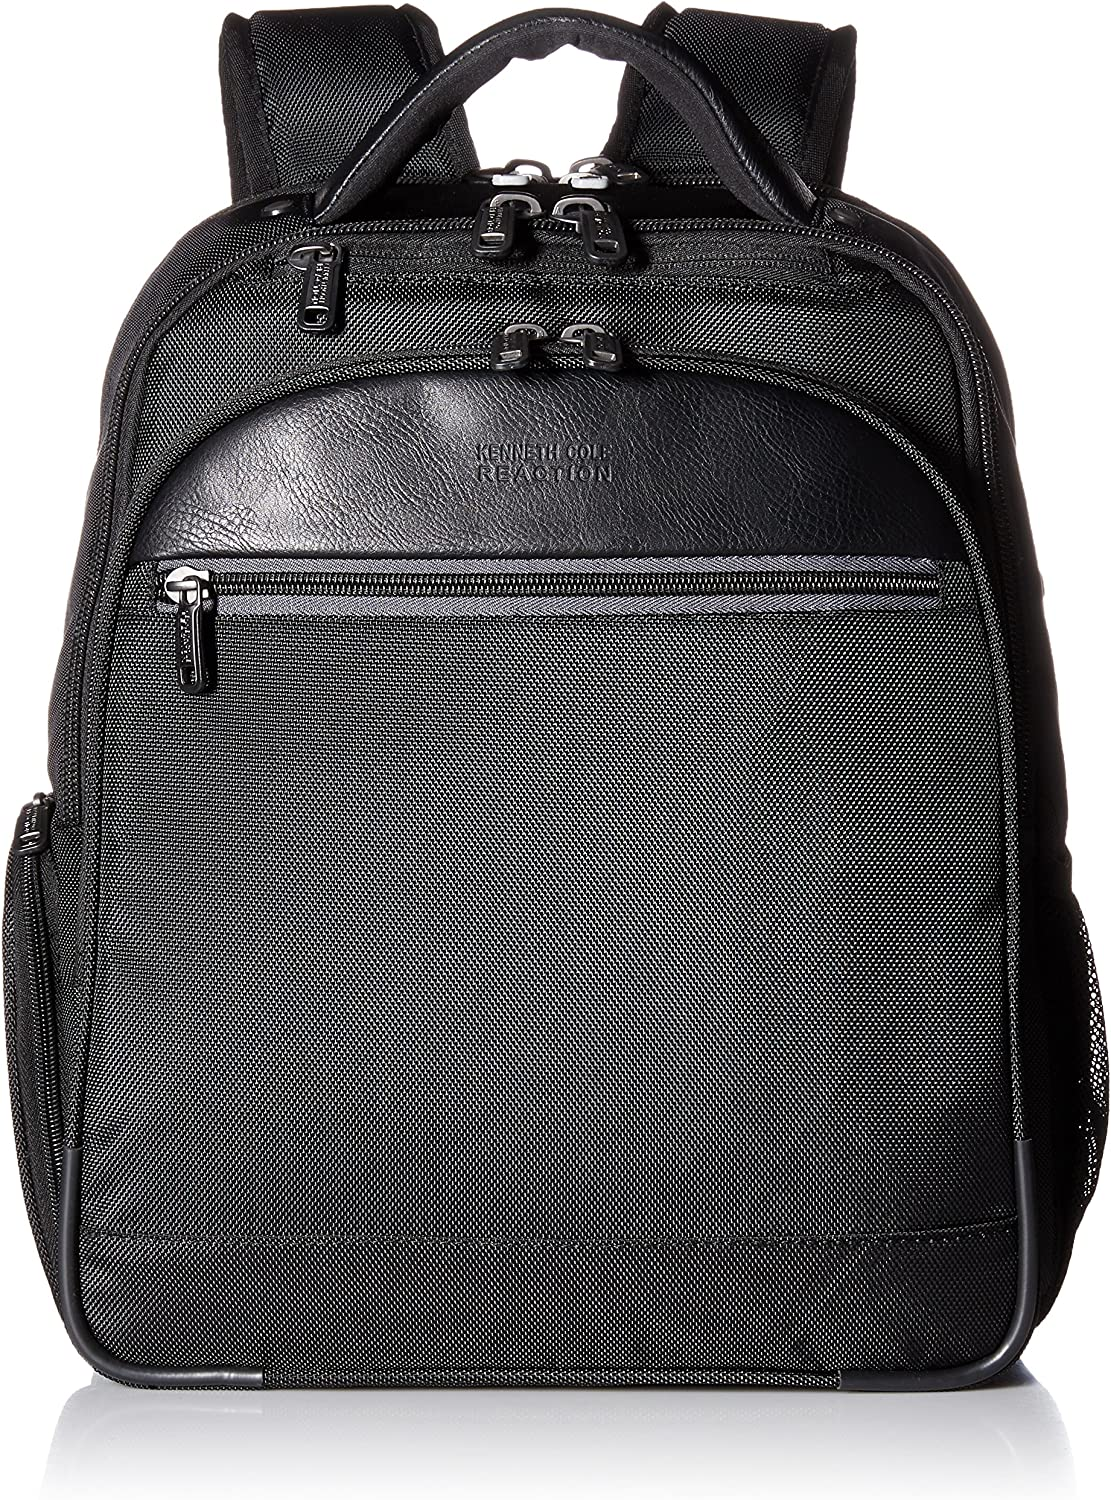 """Kenneth Cole Reaction 1680d Polyester Dual Compartment Expandable 14"""" Laptop Backpack, Black"""